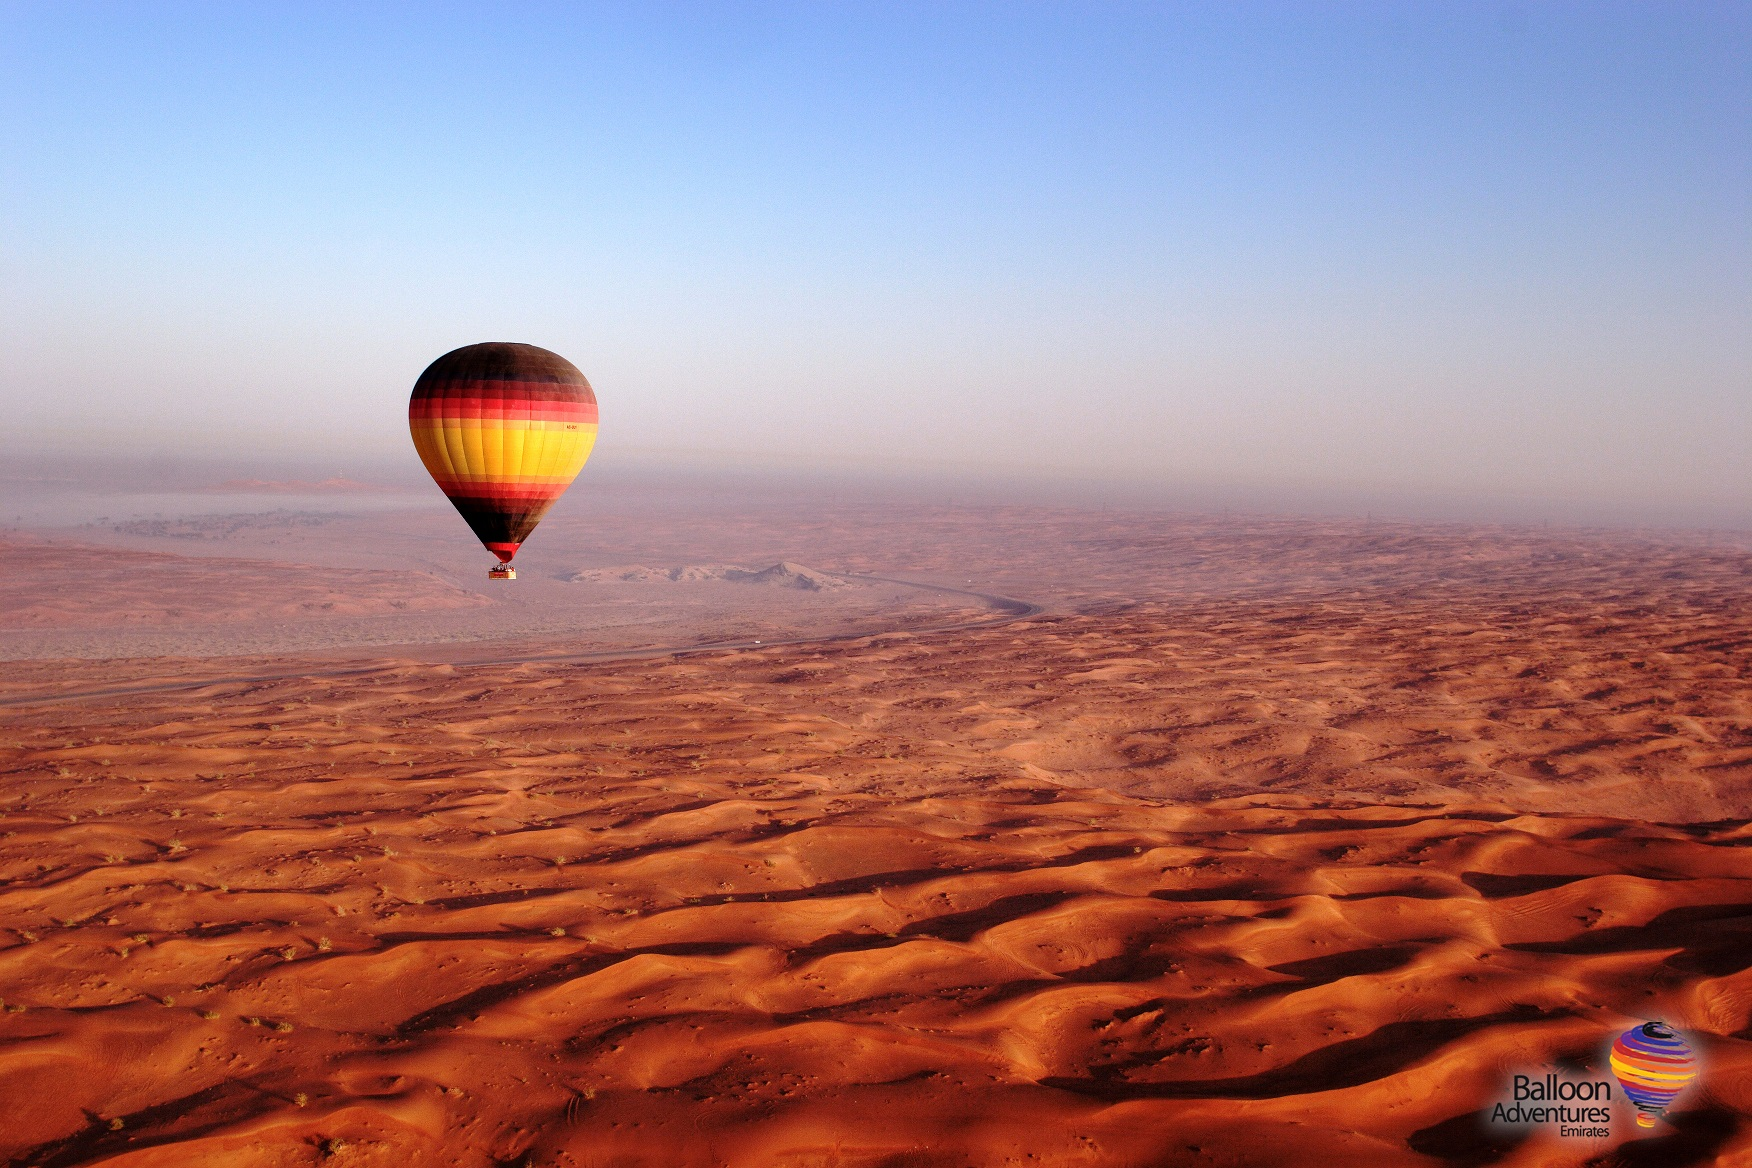 Dubai Hot Air Balloon : Romantic Desert, Silent Sunrises, and Exclusive Views of the Country's Premier National Ecological Reserve